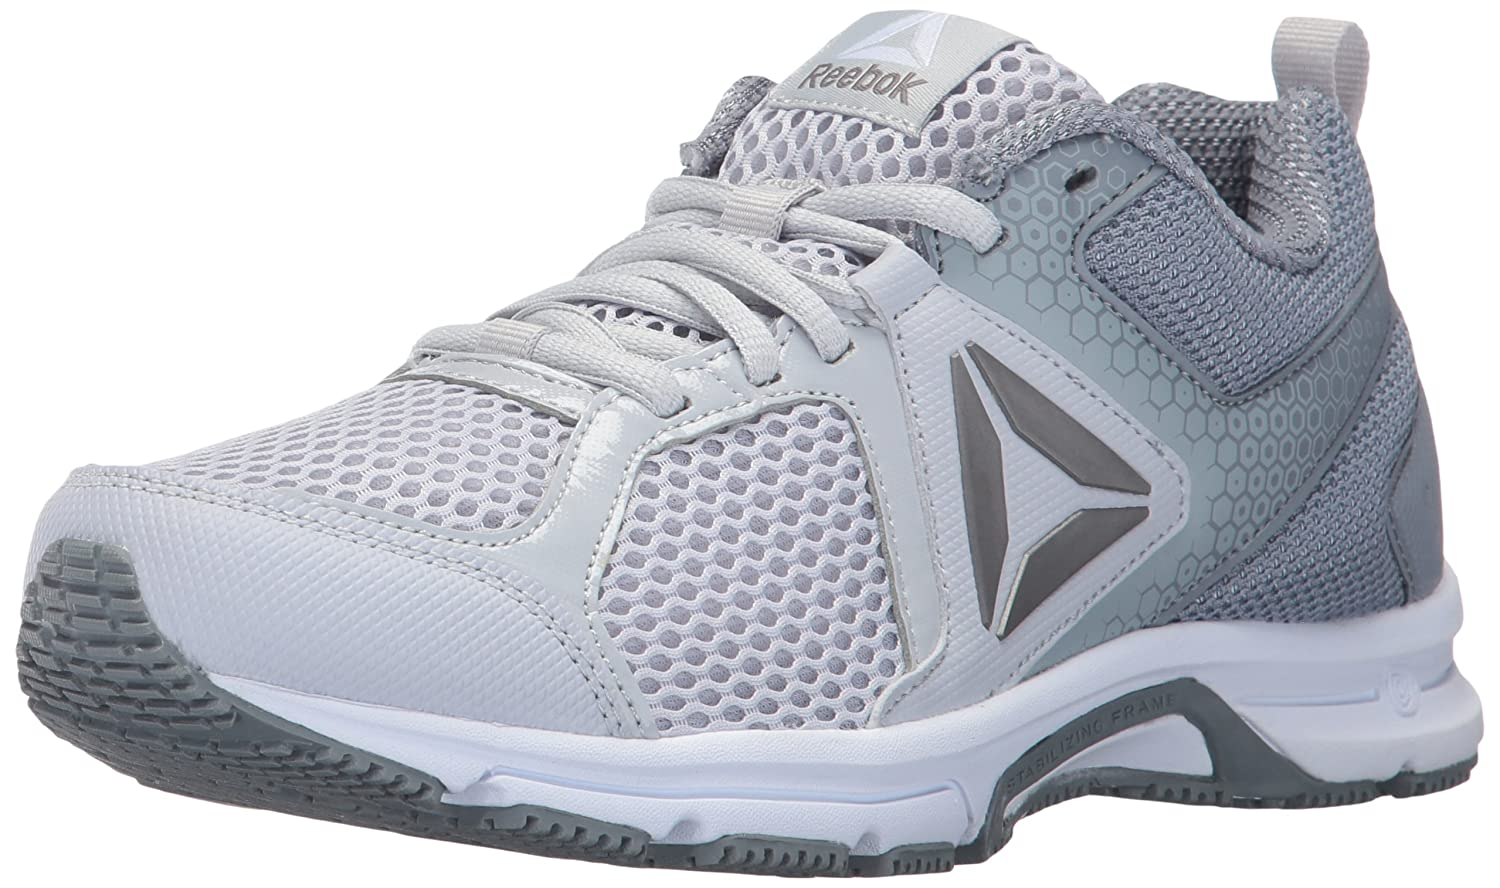 Reebok Women's Runner 2.0 MT Track Shoe B01NCLLPVO 6.5 B(M) US|Cloud Grey/Asteroid Dust/Pewter